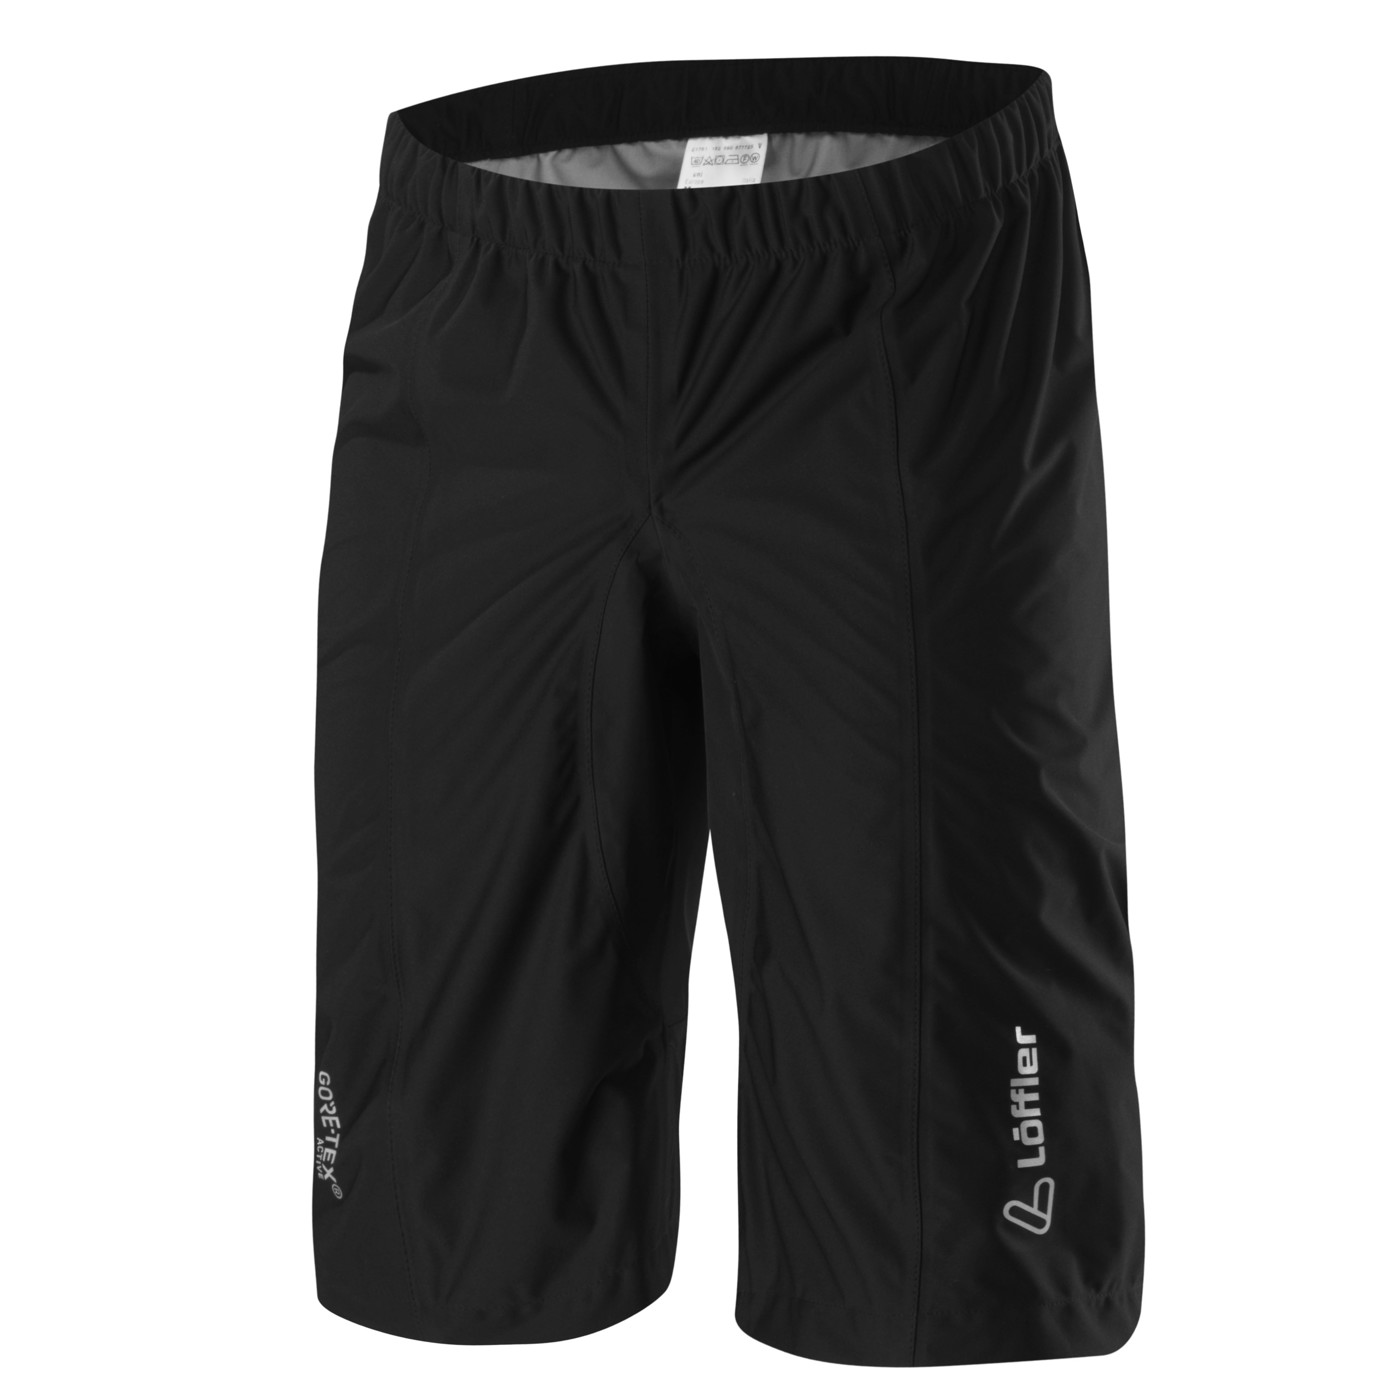 LÖFFLER BIKE SHORTS GTX ACTIVE - Herren